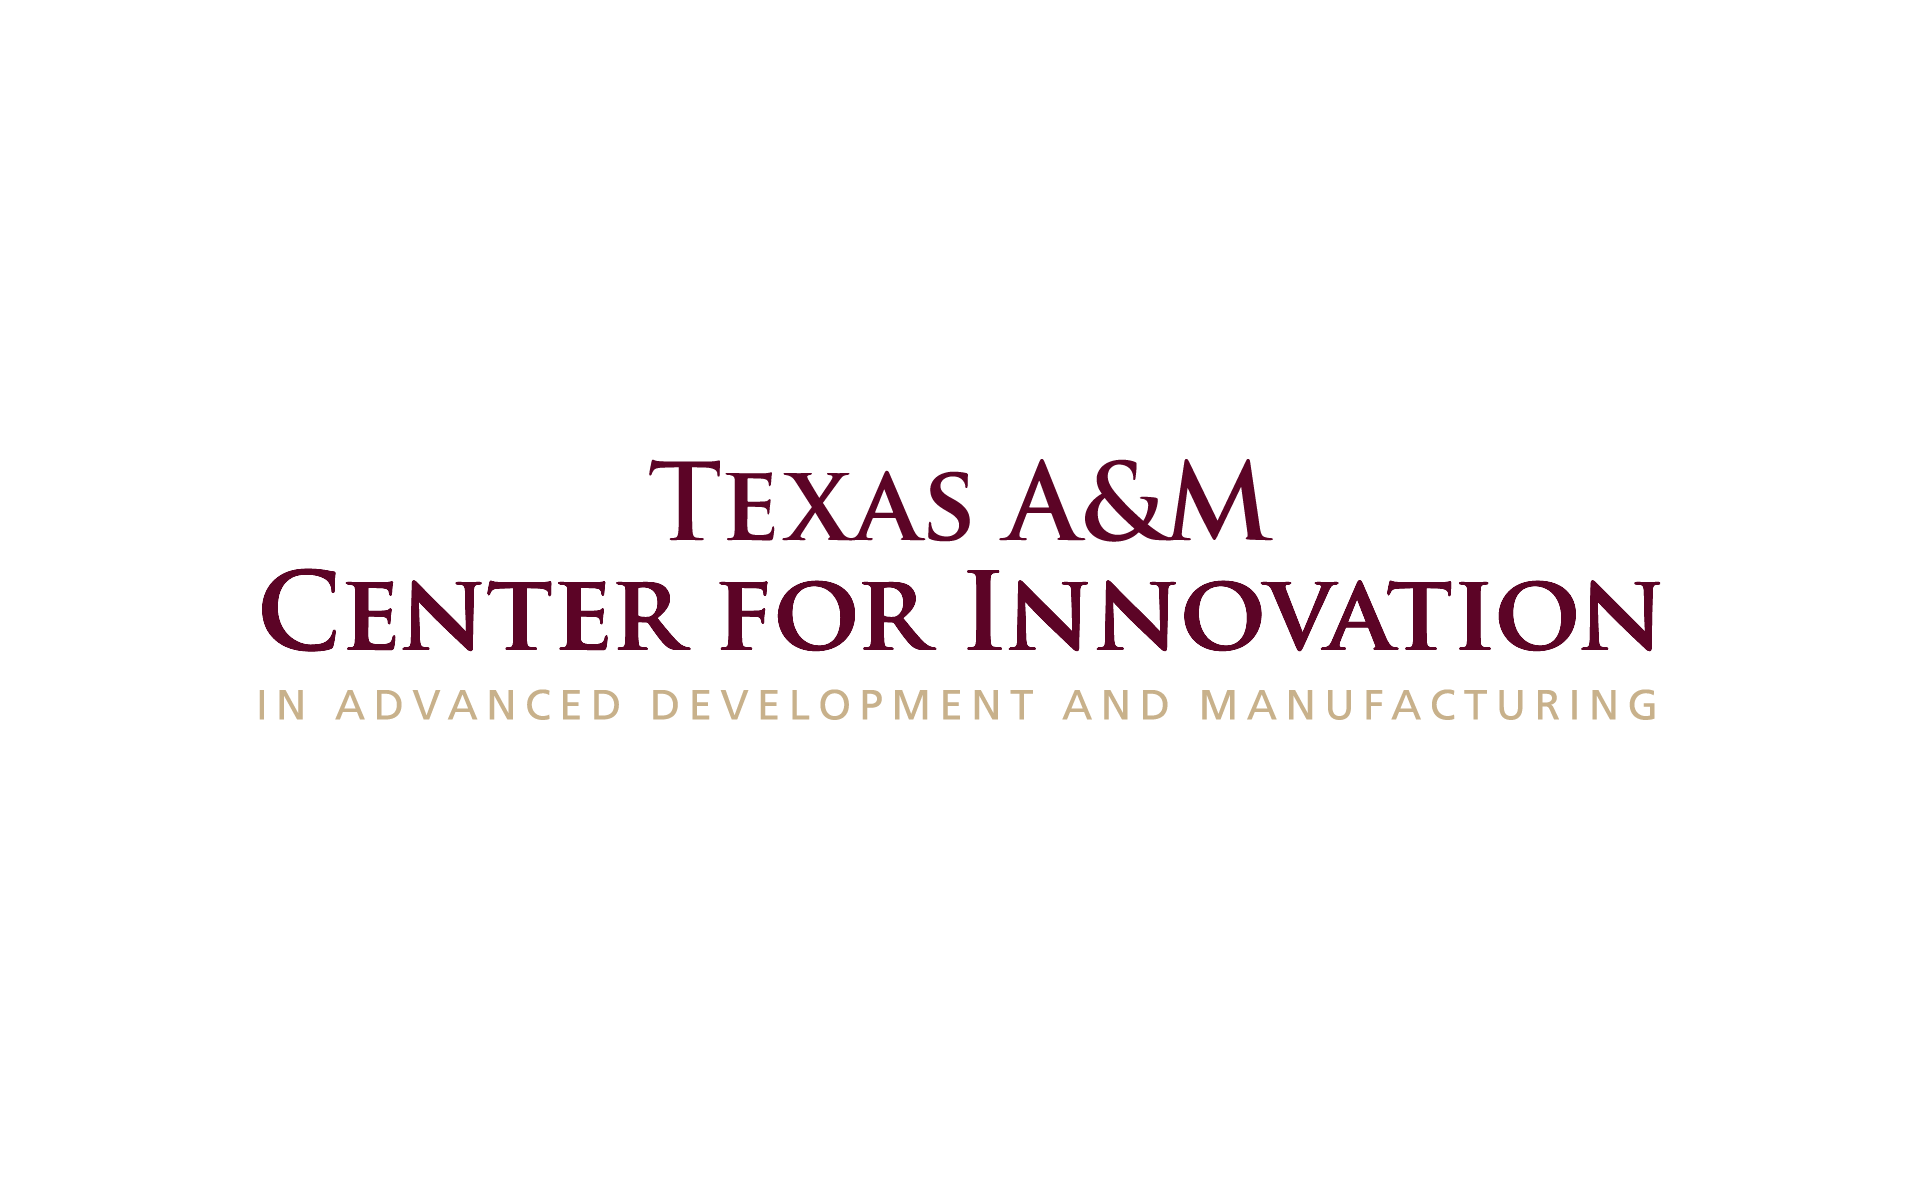 TEXAS A&M CENTER FOR INNOVATION